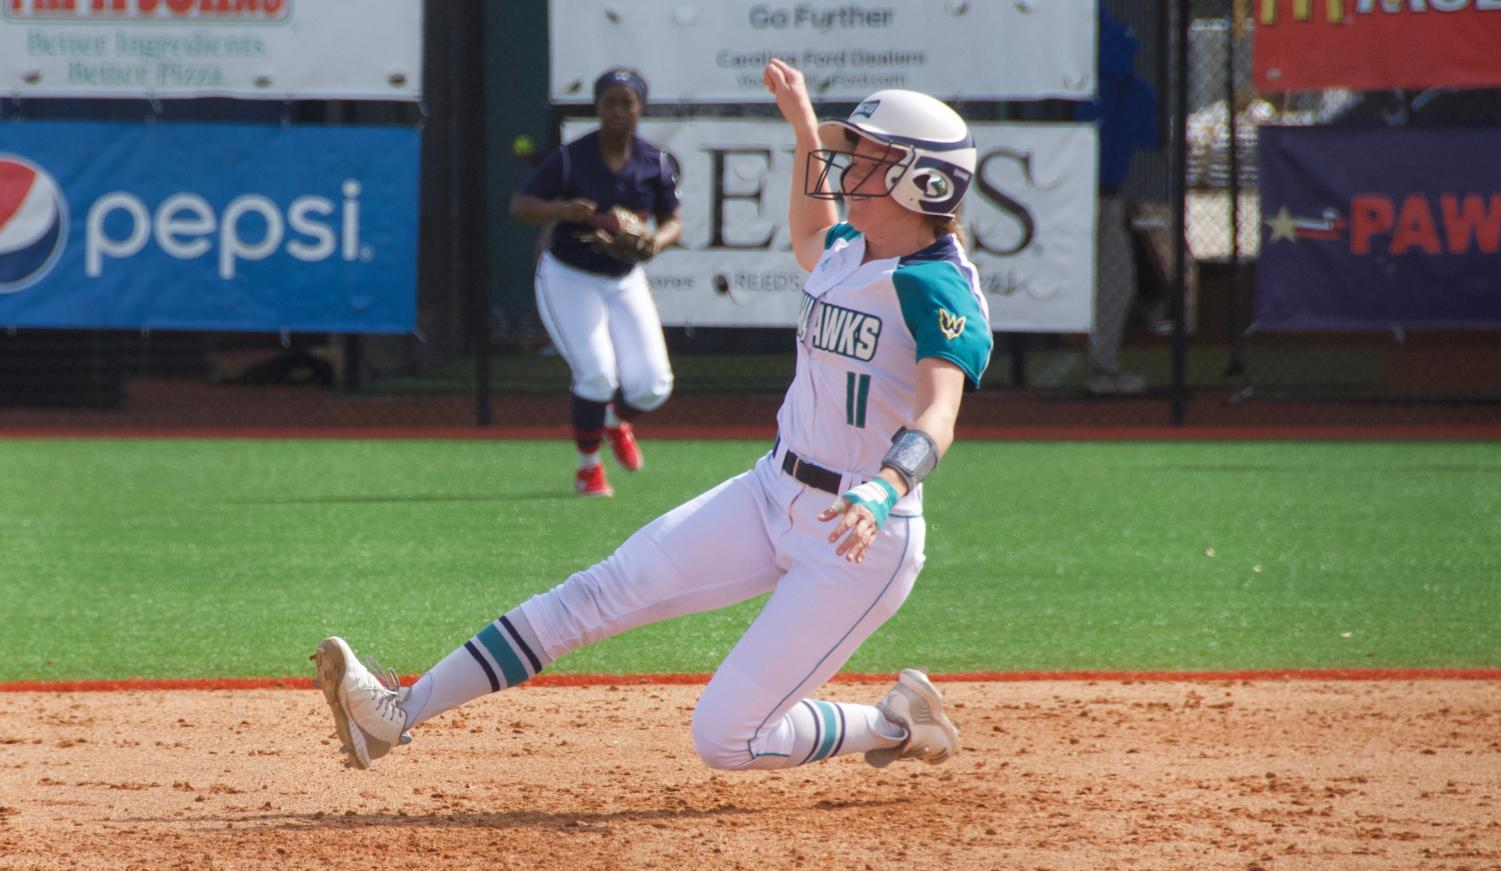 Camryn Dean (11) slides into third base during UNCW's matchup with Howard in the Fairfield Inn & Suites Seahawk Softball Bash on Feb. 15, 2019.